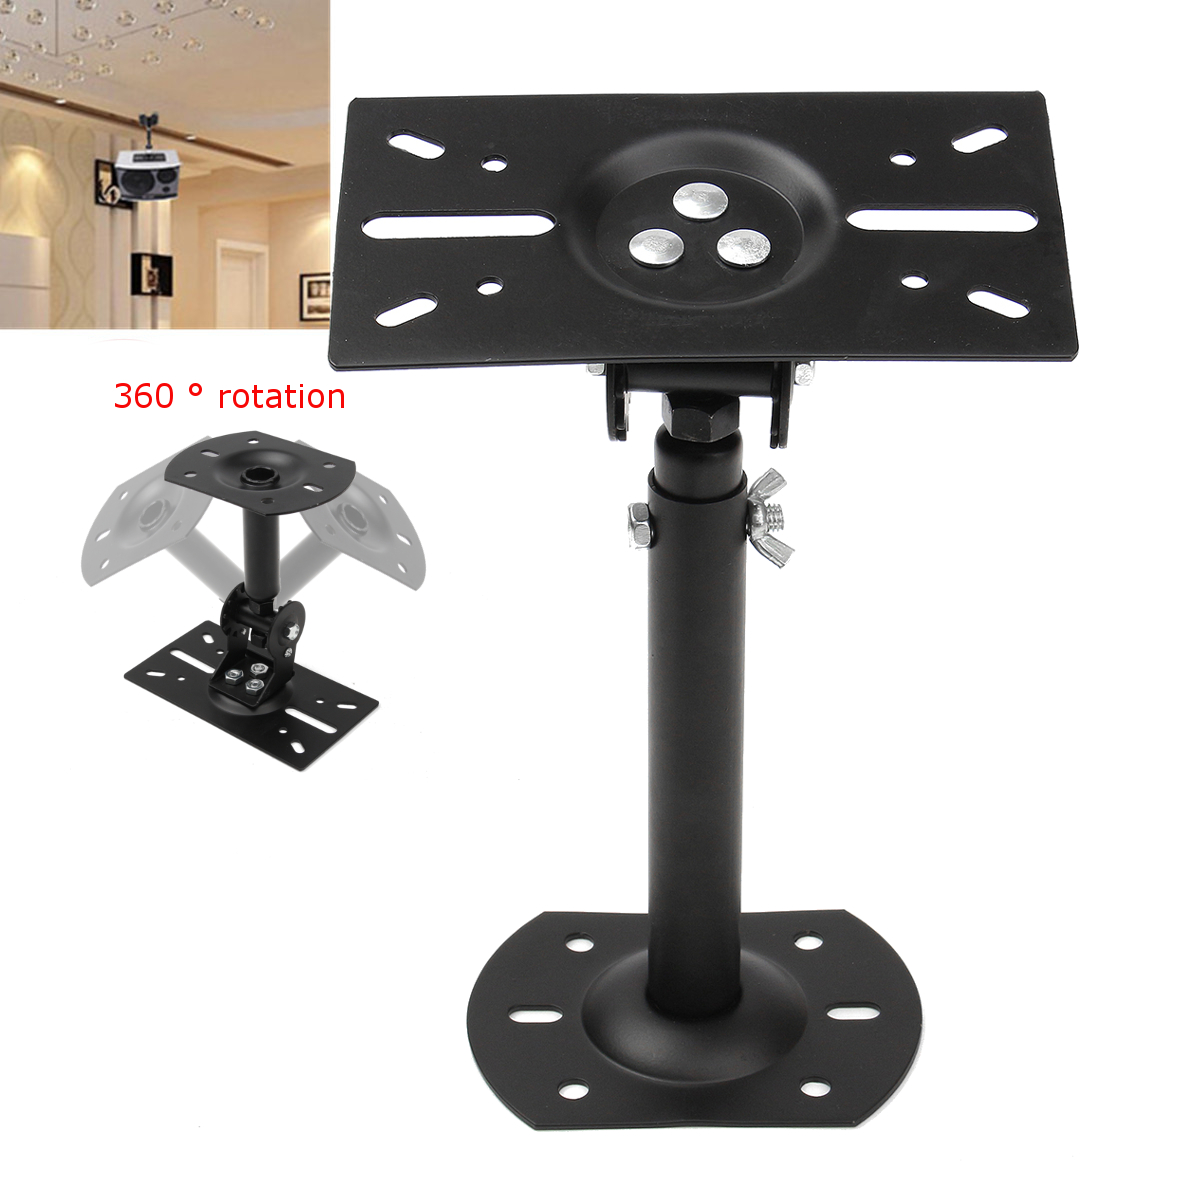 High Quality New Wall Mount Ceiling Bracket Holder Universal Adjustable Stable Stand Holder